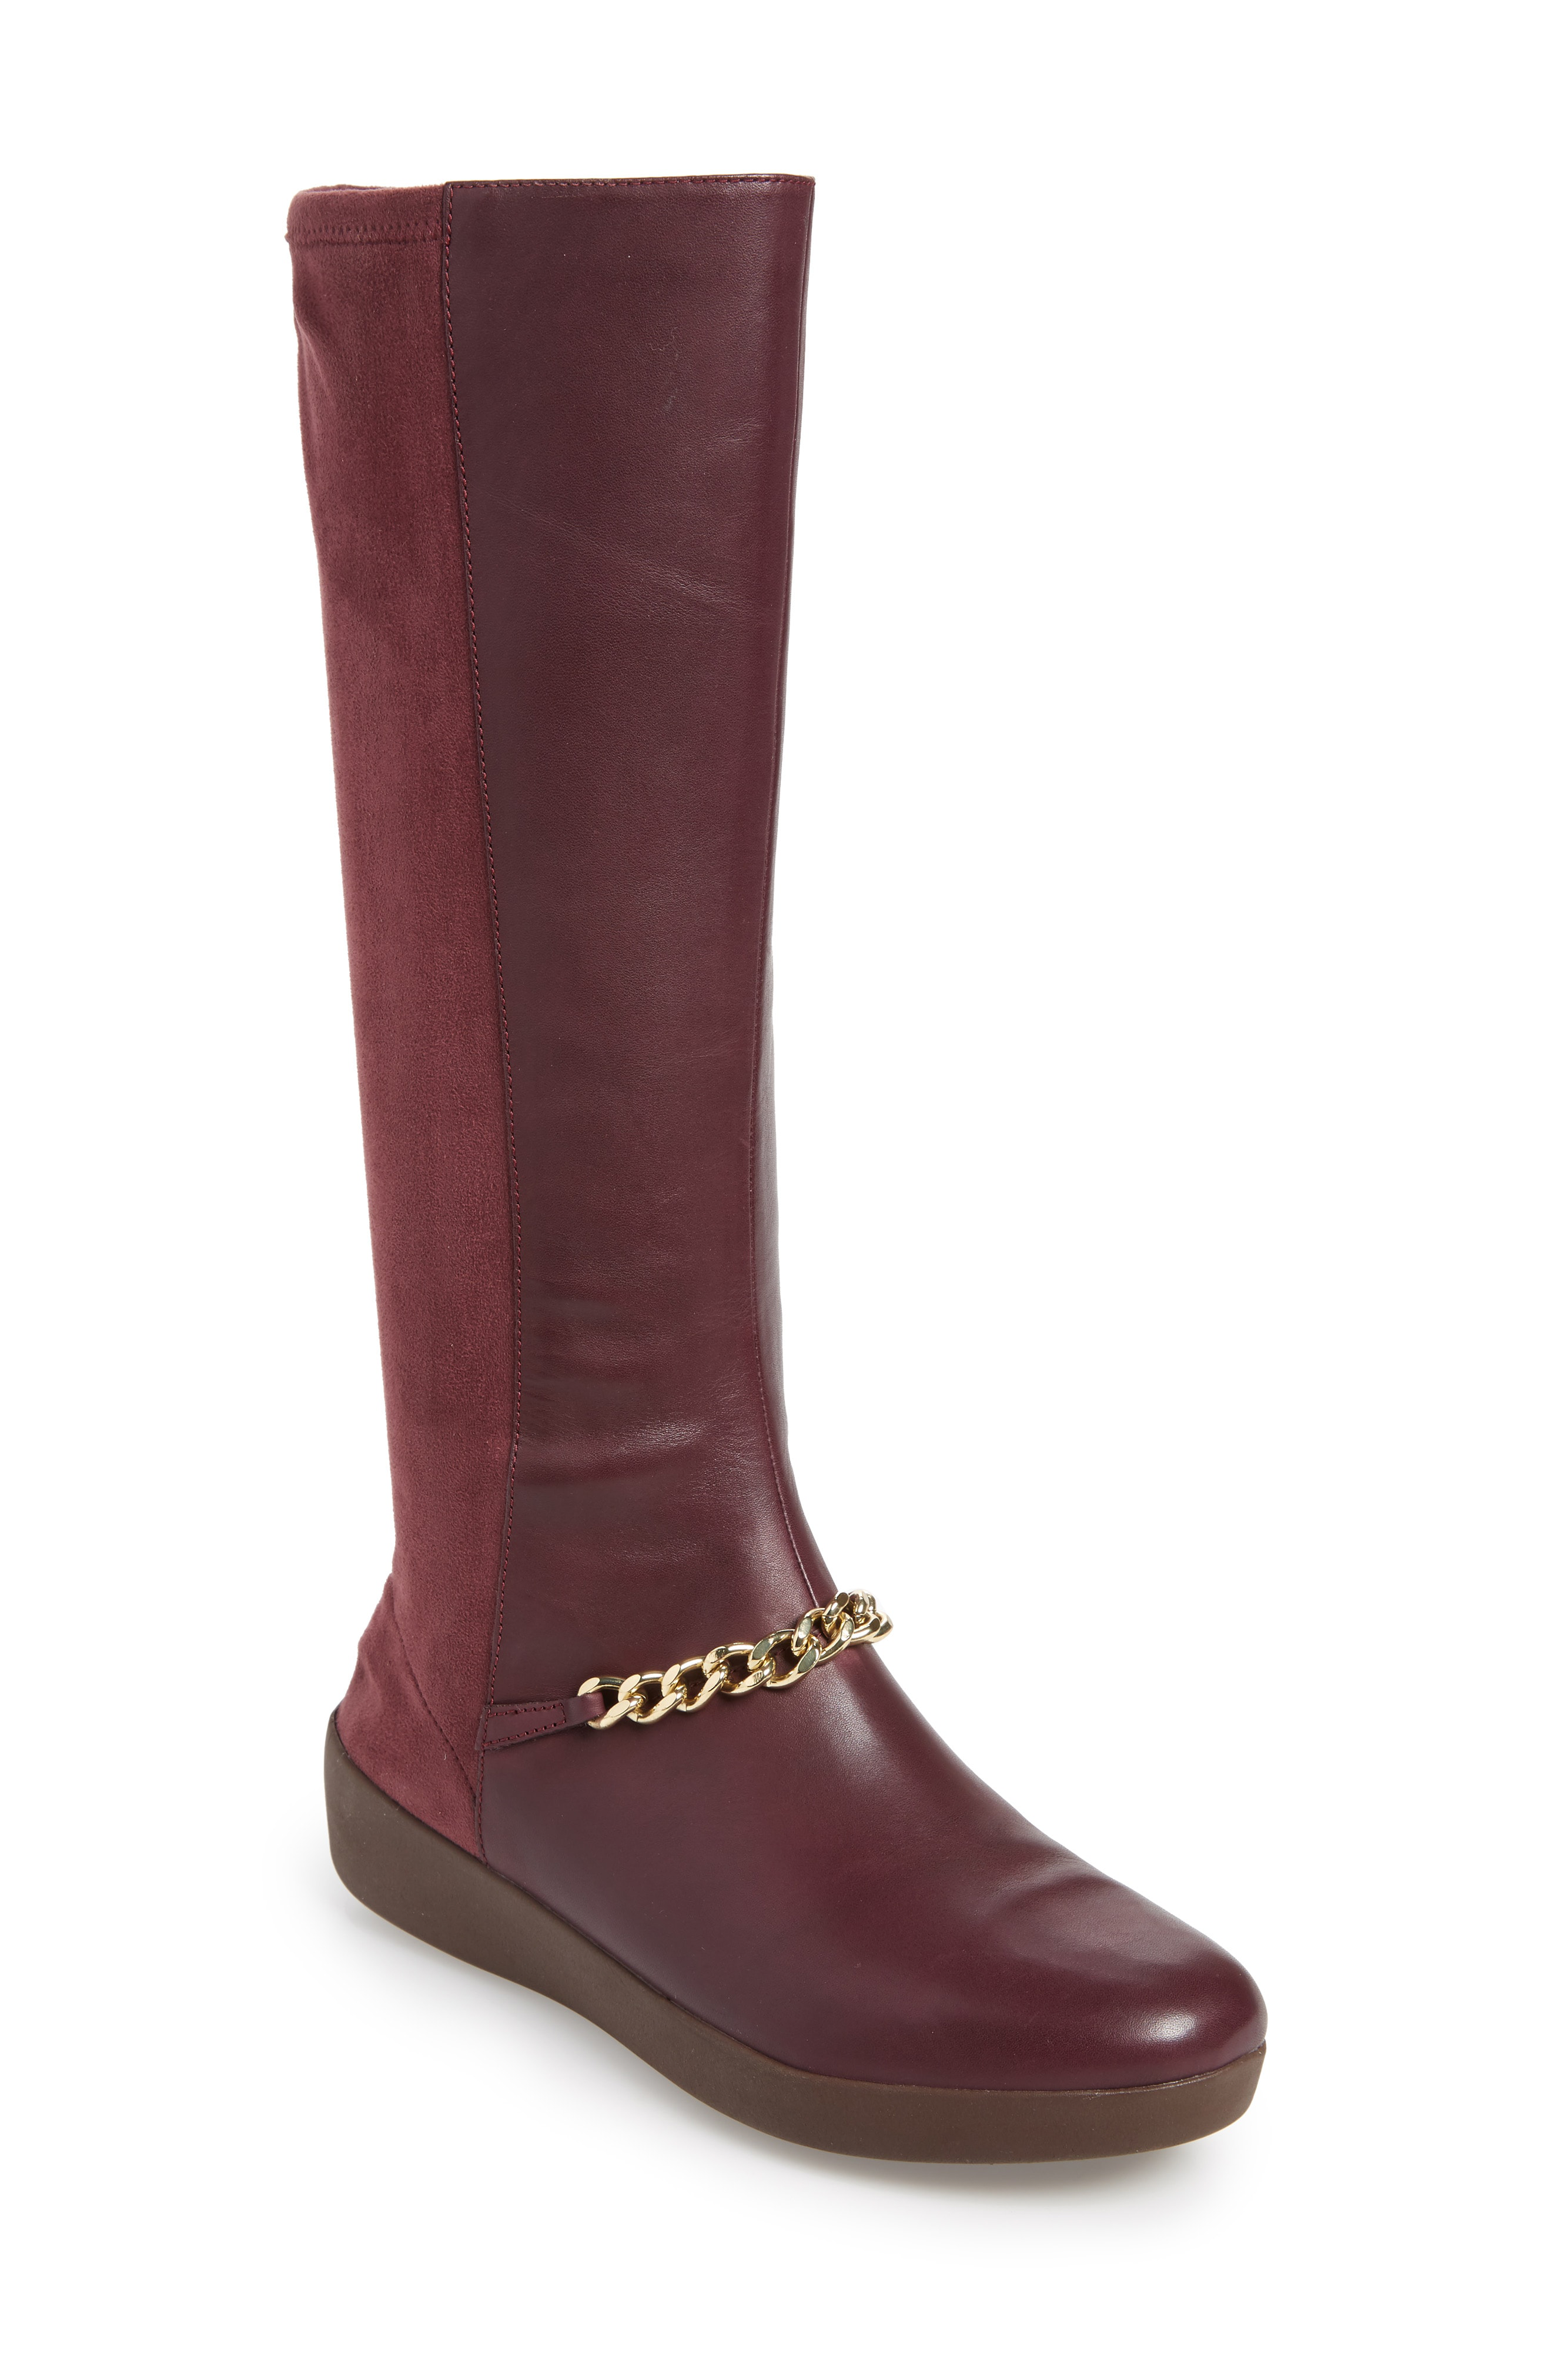 3cc435330e Fitflop Fifi Knee High Boot In Deep Plum Leather